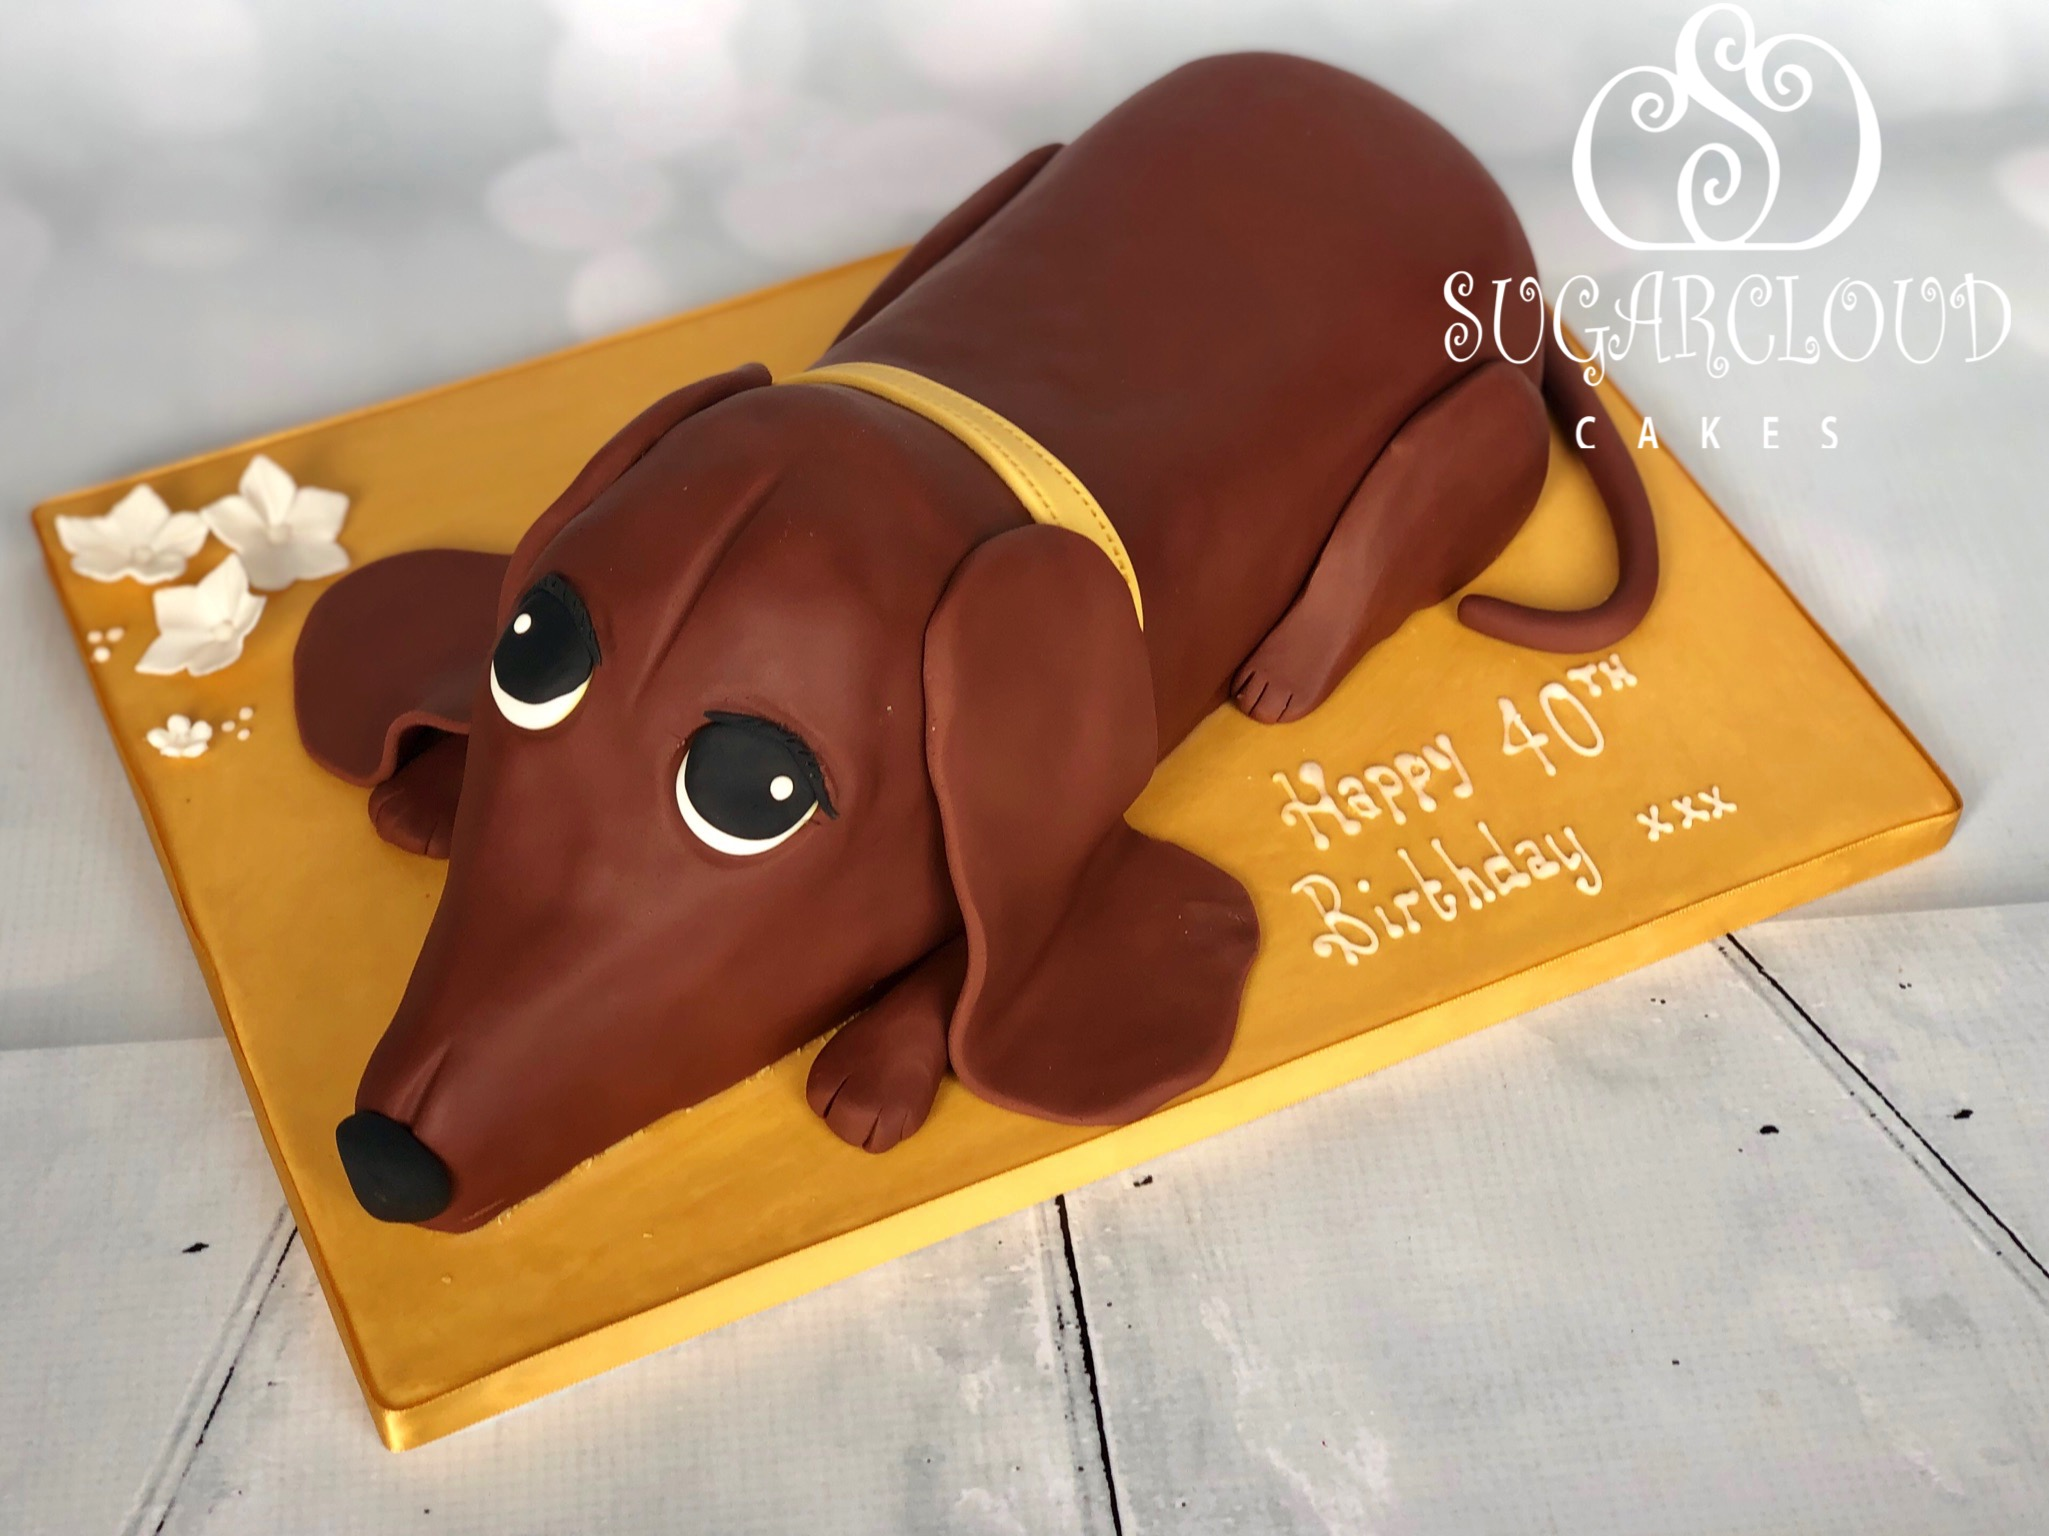 A Carved Dachshund Cake for a Lockdown 40th Birthday, Whitchurch